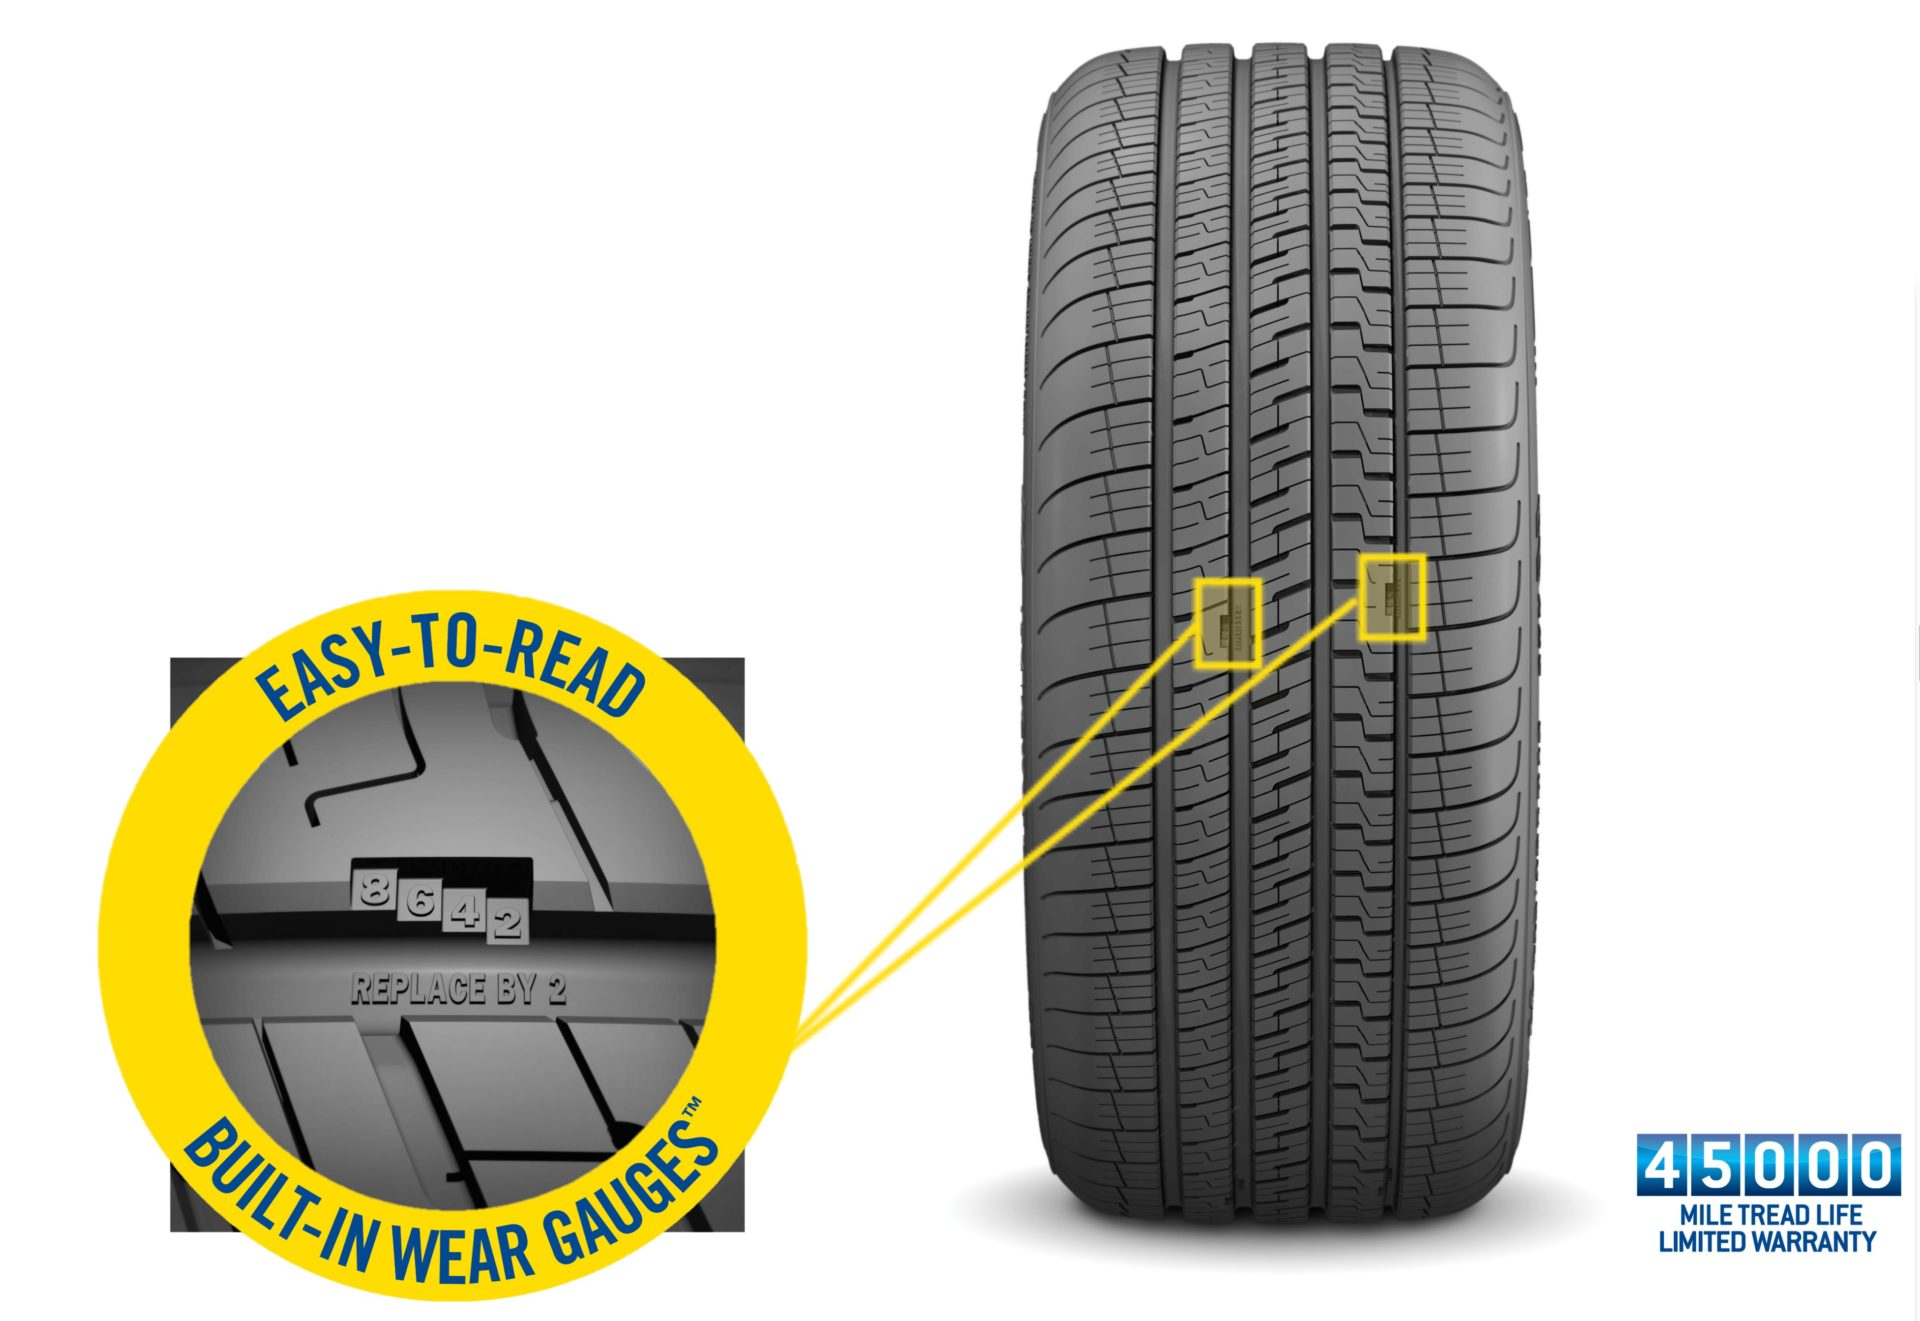 Goodyear Wear Gauge Technology